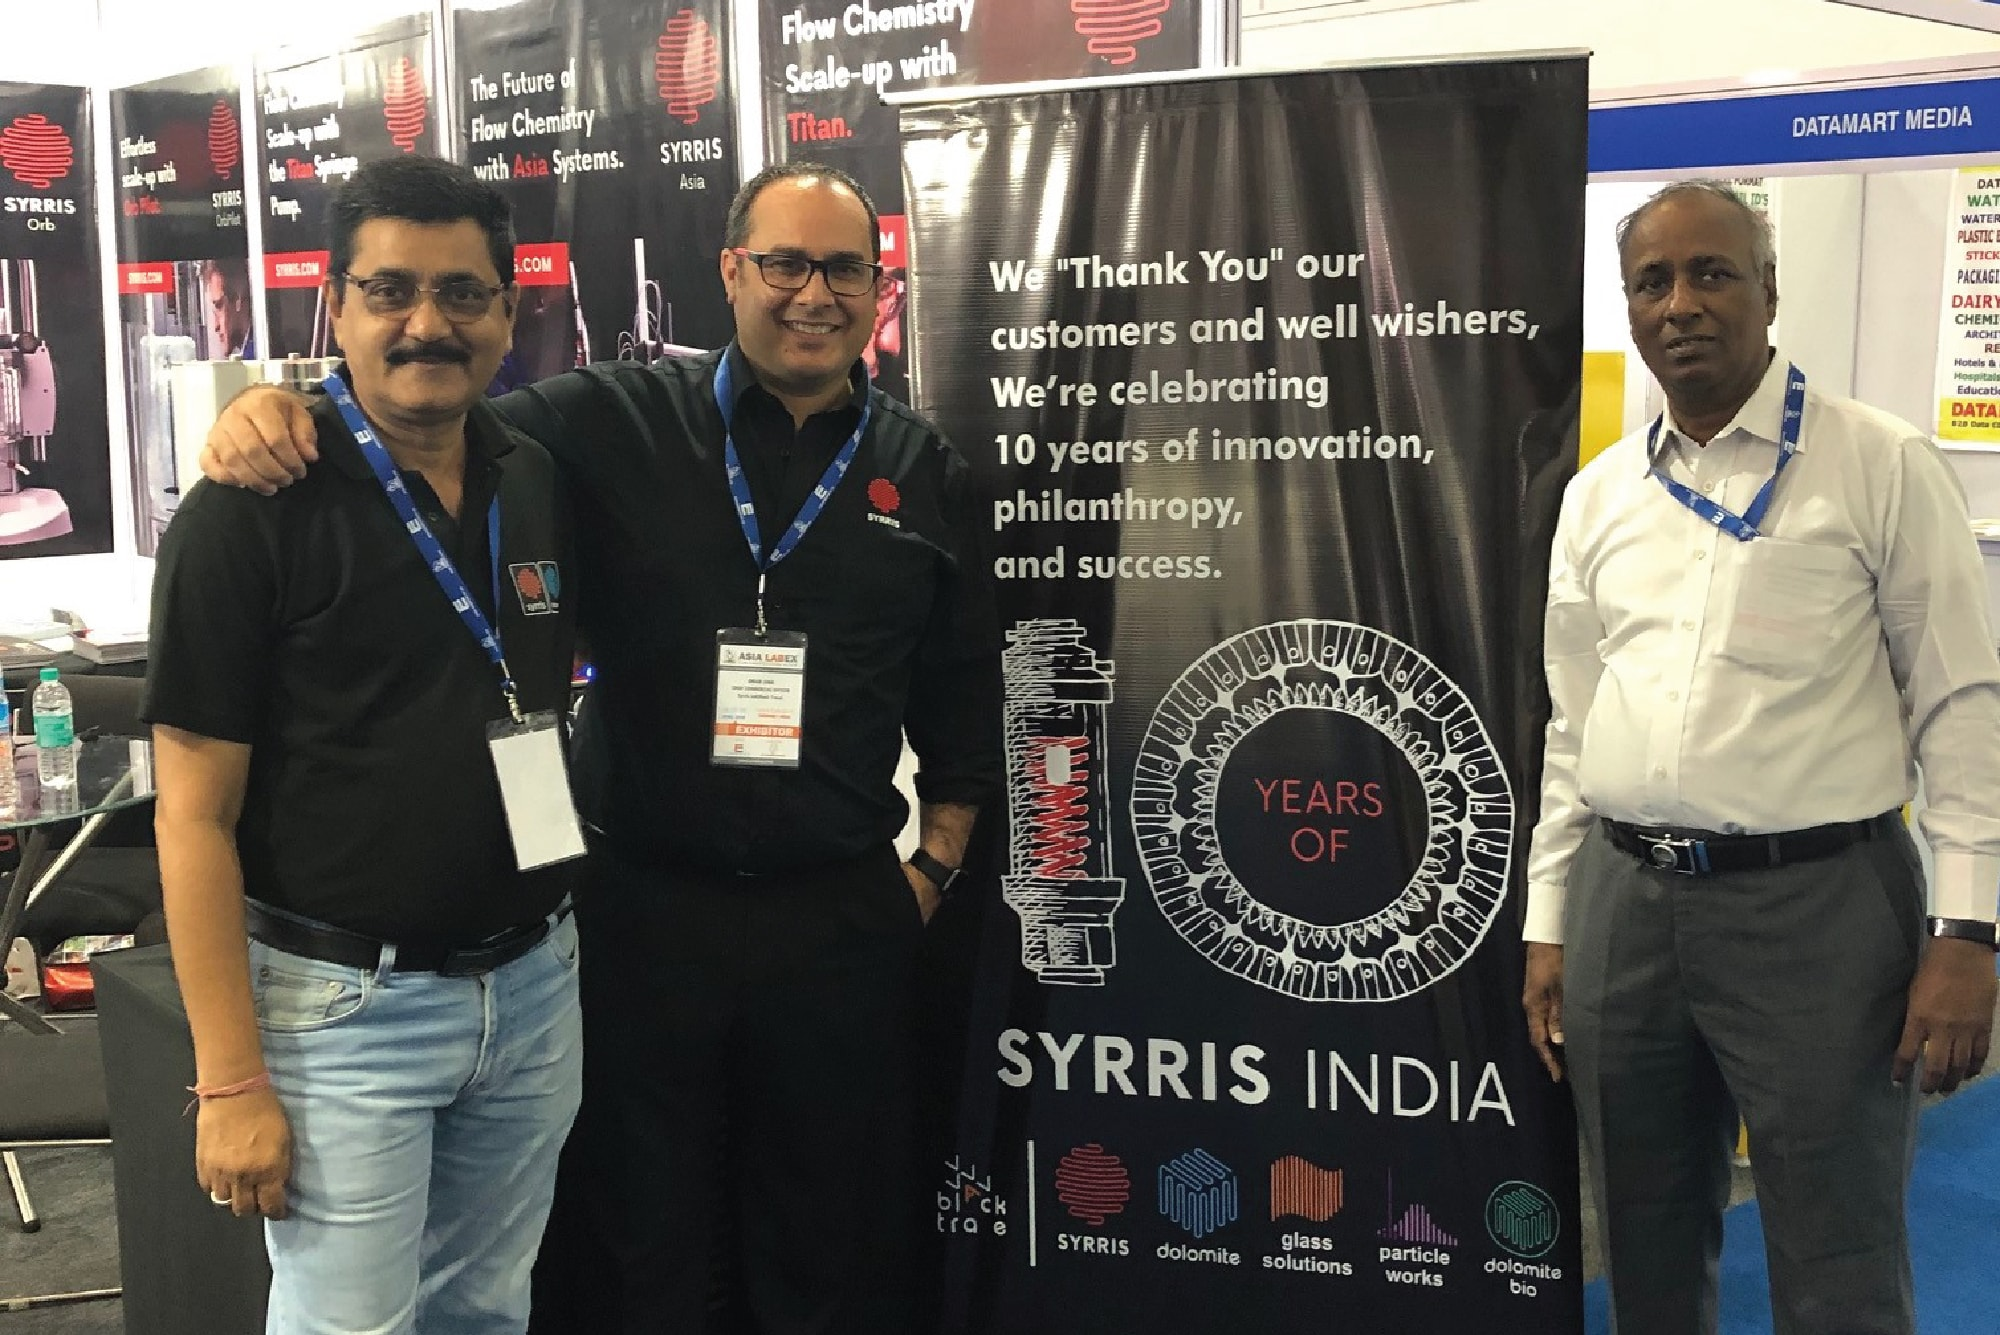 From-the-Bay-of-Bengal-to-the-Arabian-Sea-Syrris-celebrates-10-years-in-India-Founding-Members-of-Syrris-India-Ramen-and-Dinesh-01-min